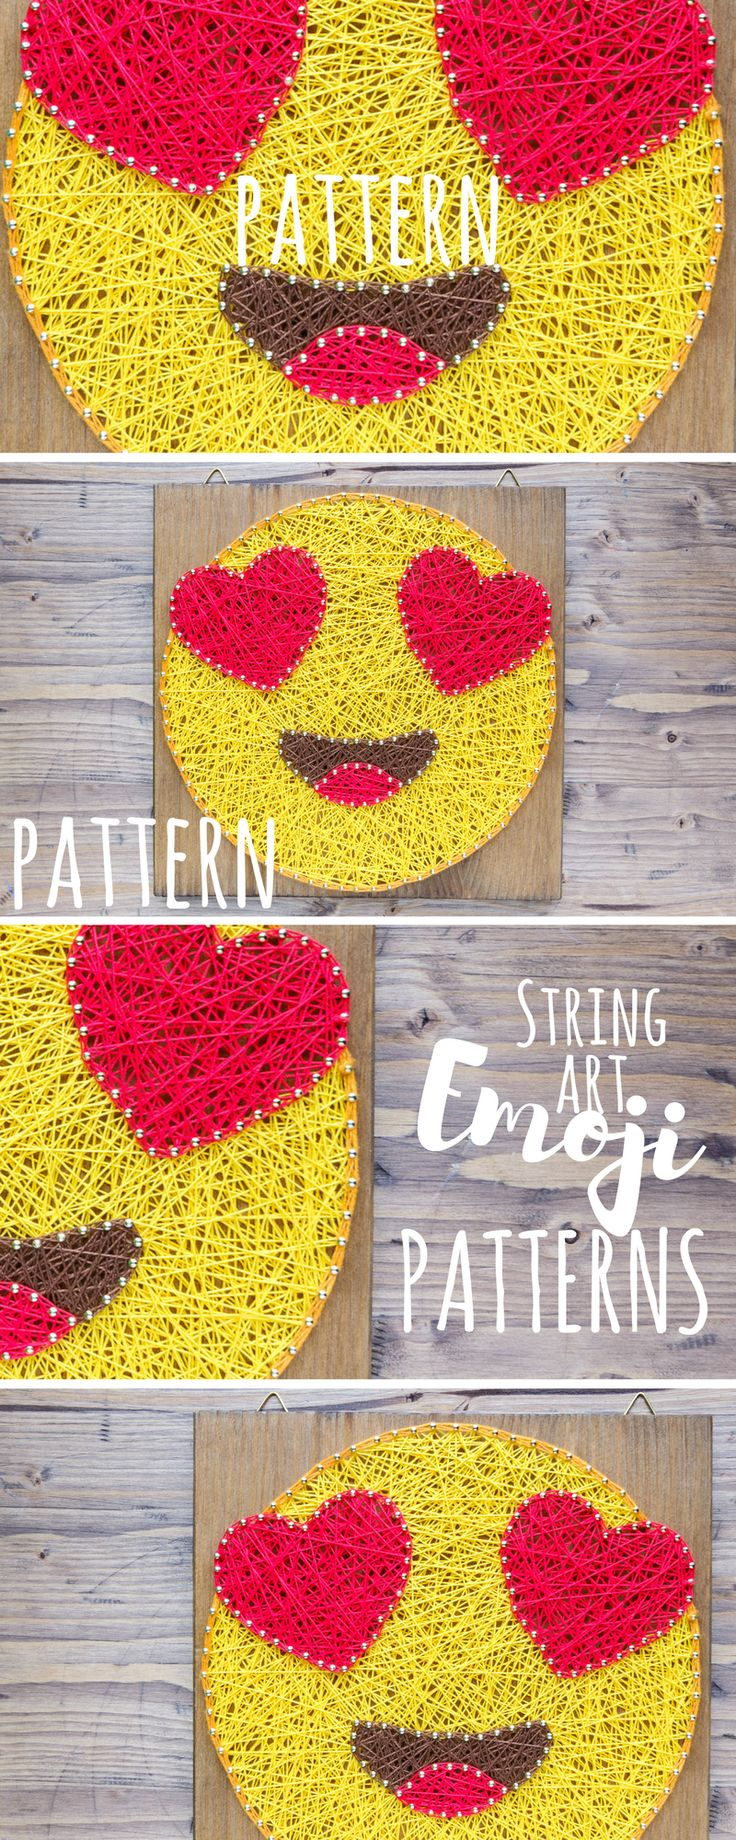 342 best String Art images on Pinterest | String art, Wood and Craft